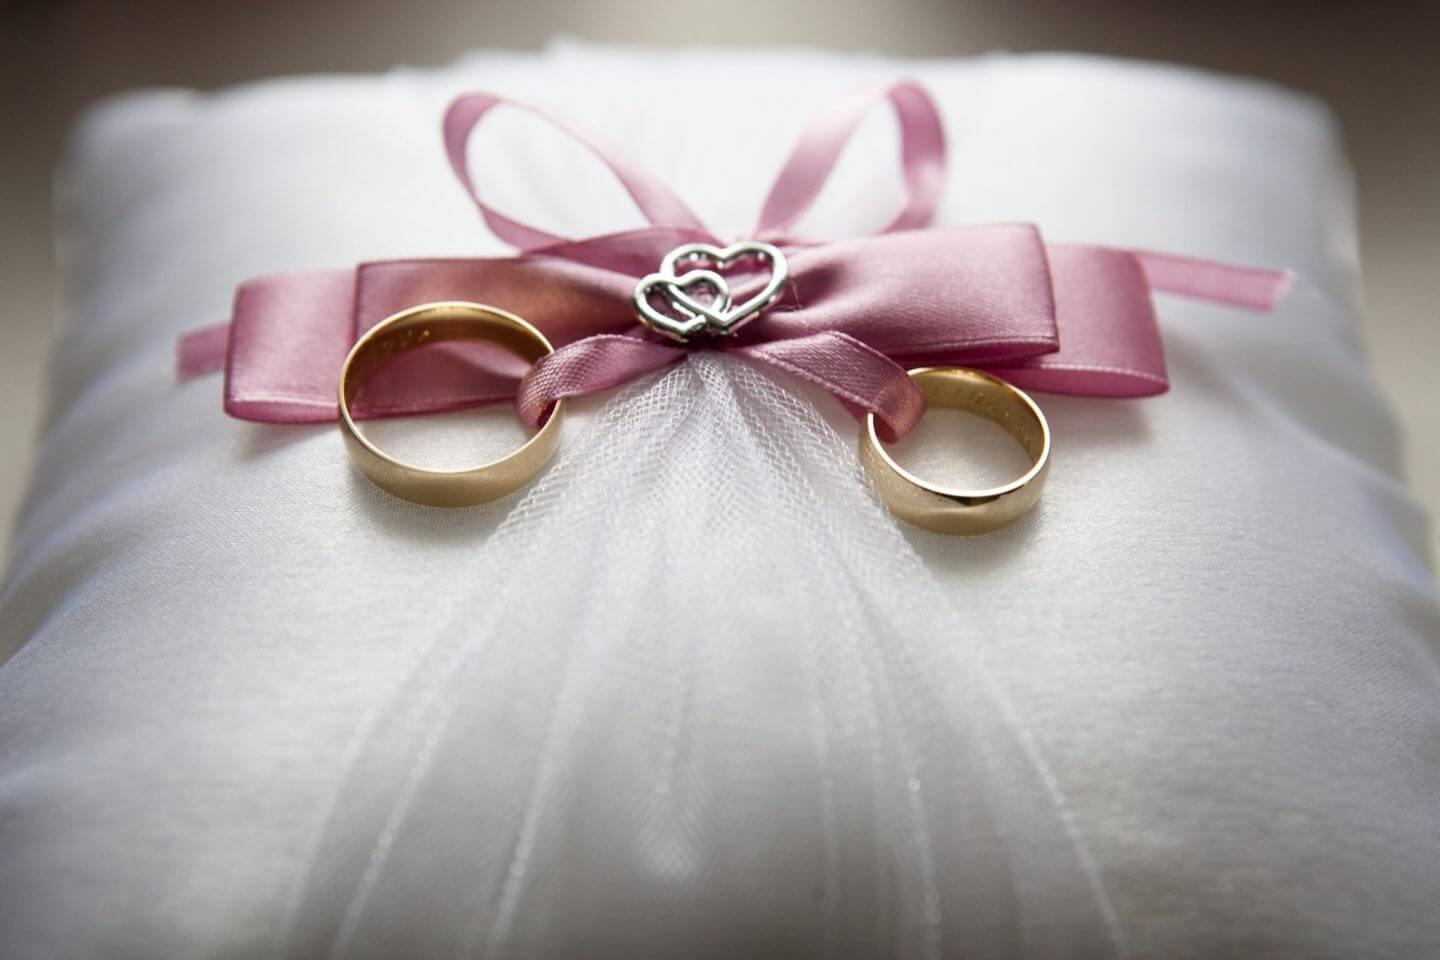 Wedding bands on a white pillow with pink ribbon